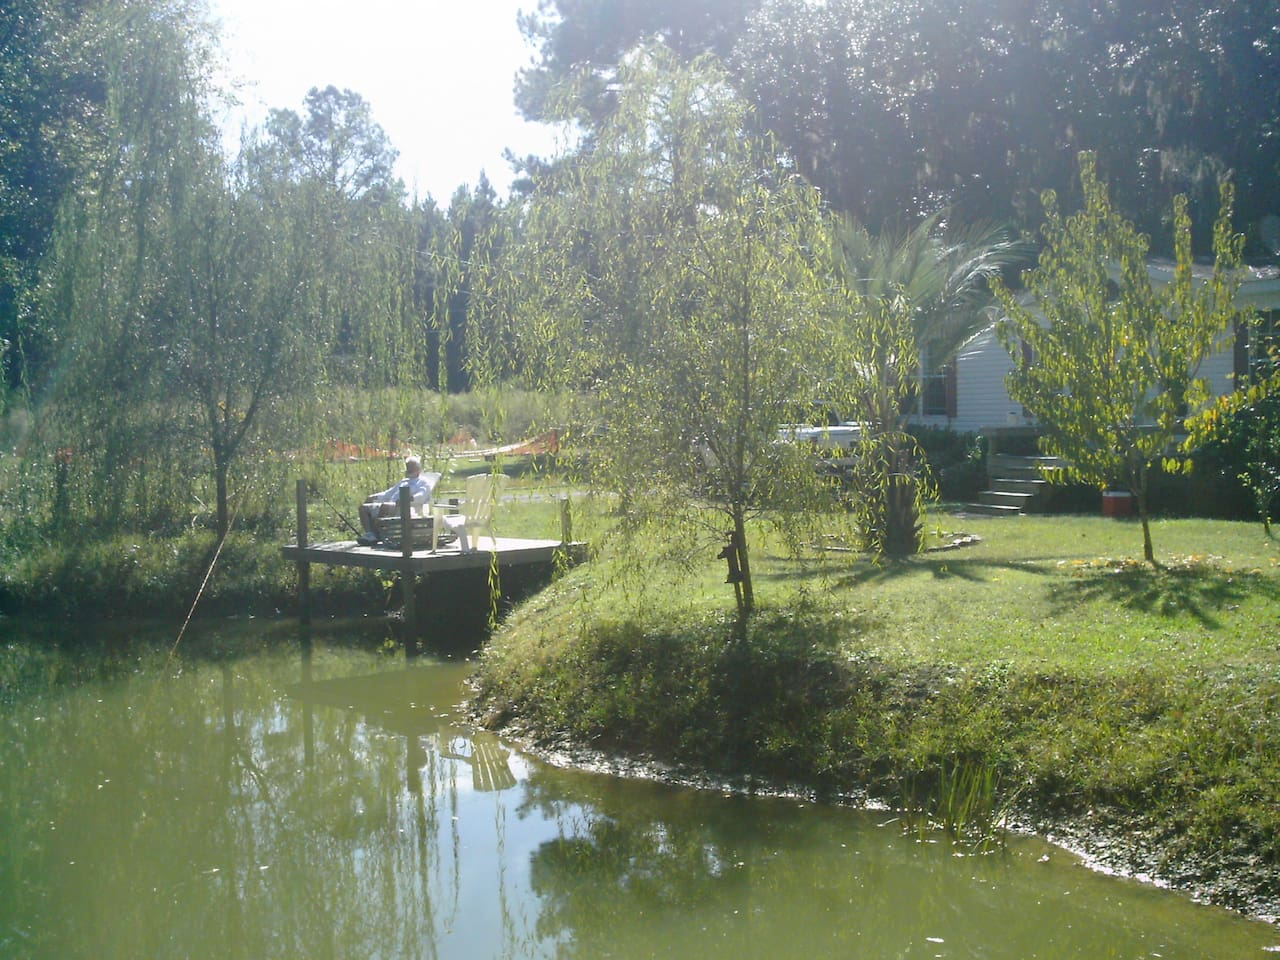 Enjoy an early morning cup of coffee on the deck overlooking the fish pond